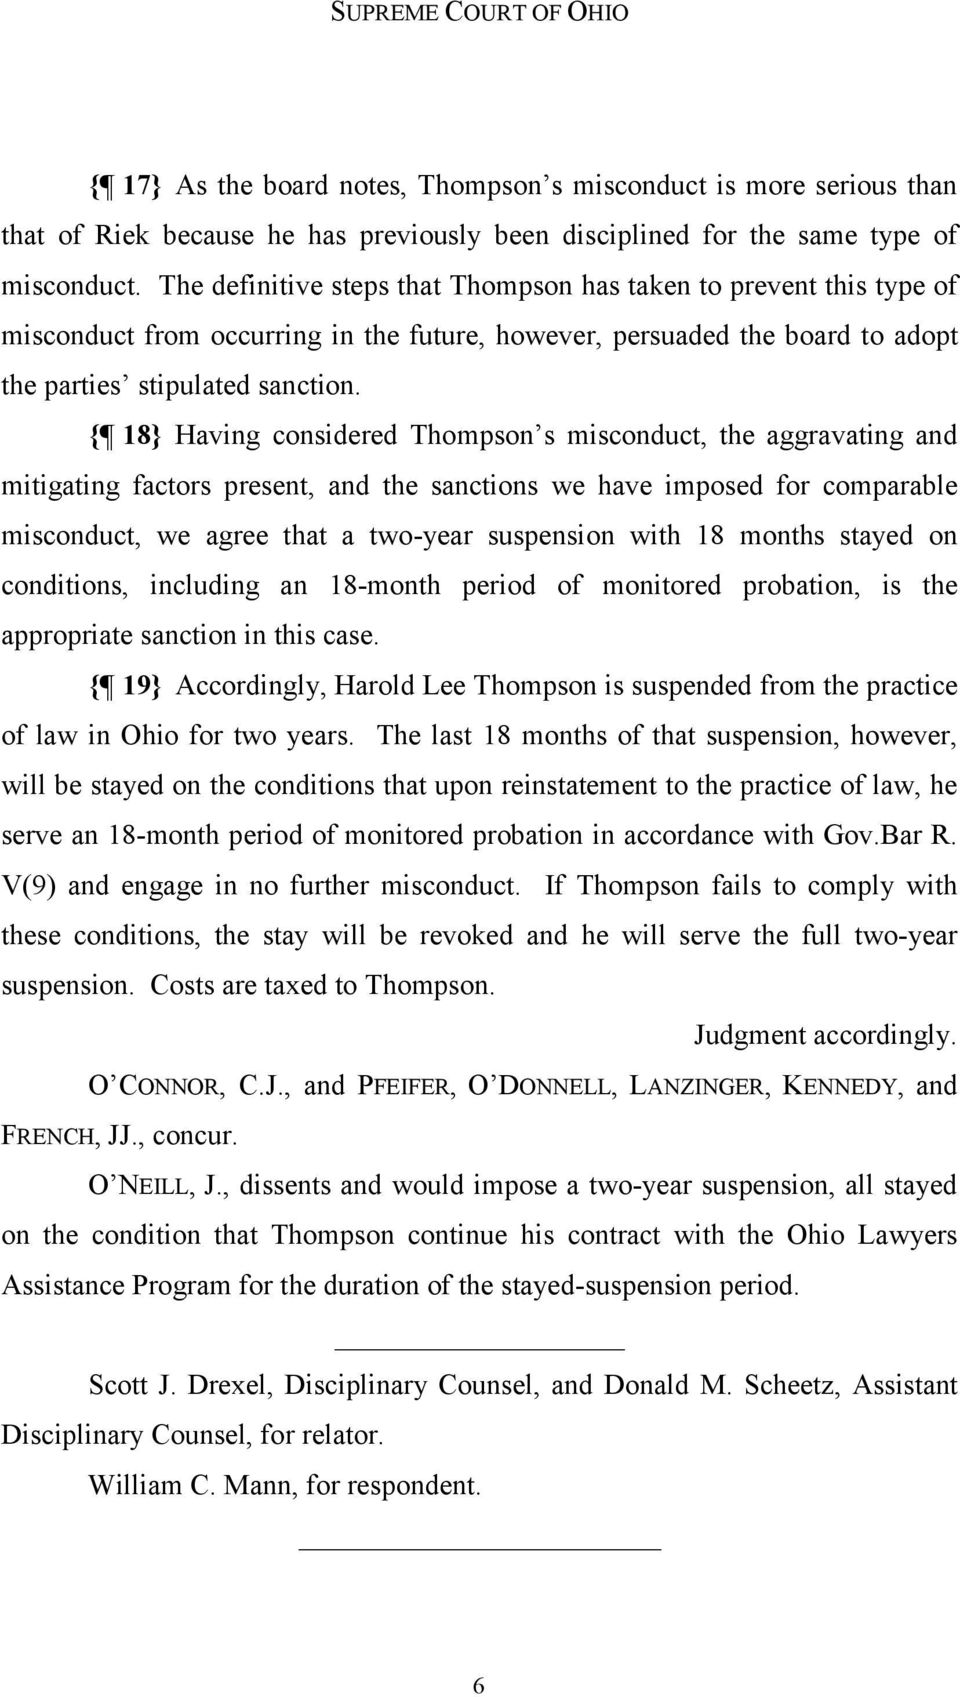 { 18} Having considered Thompson s misconduct, the aggravating and mitigating factors present, and the sanctions we have imposed for comparable misconduct, we agree that a two-year suspension with 18